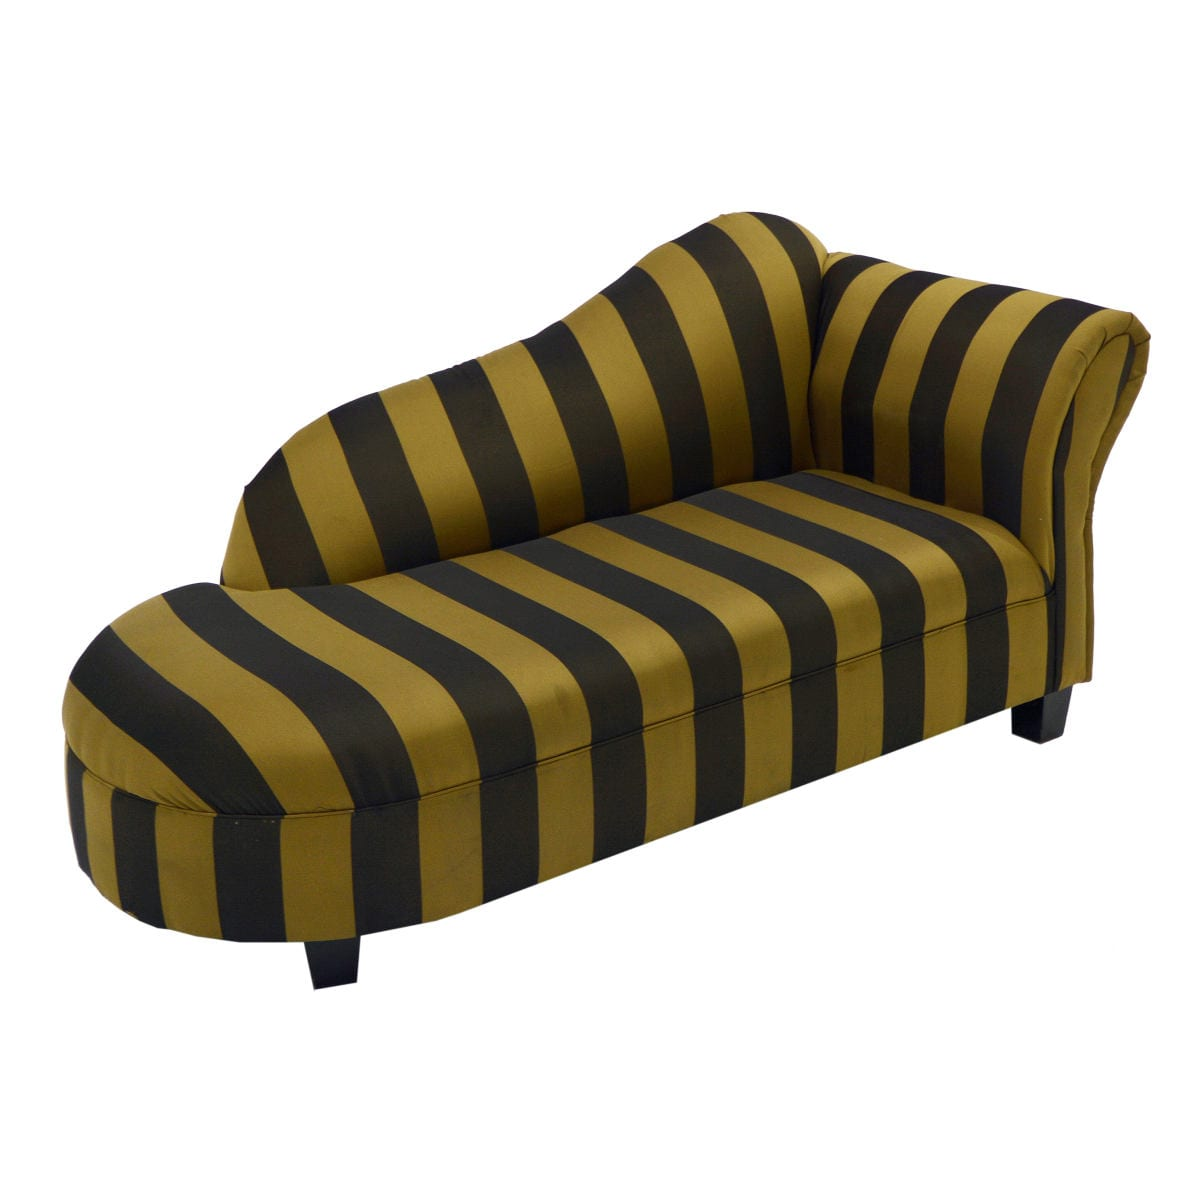 Black And Gold Striped Chaise Lounge